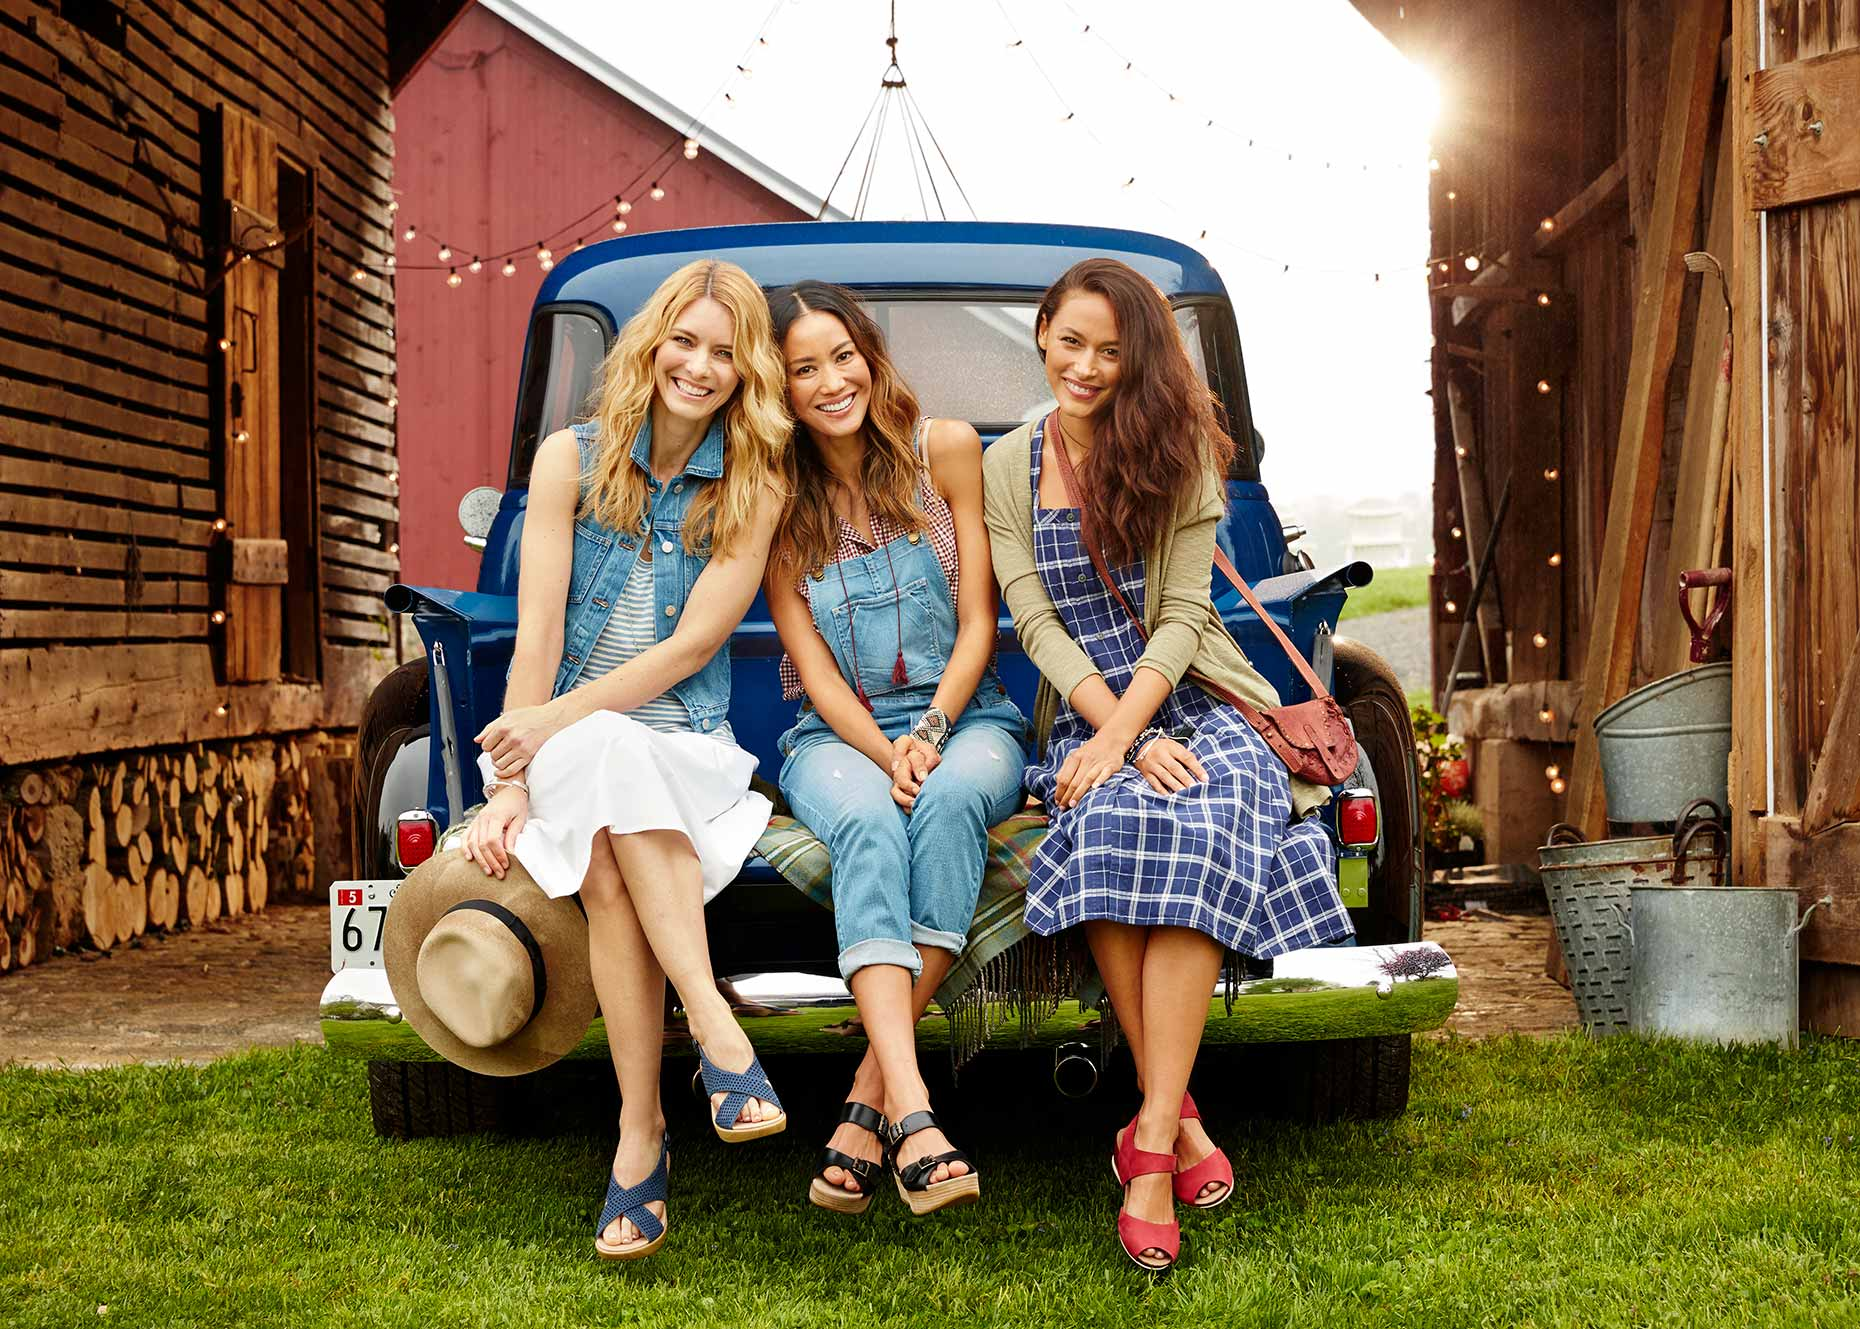 3 women hang out in the back of an old pickup truck